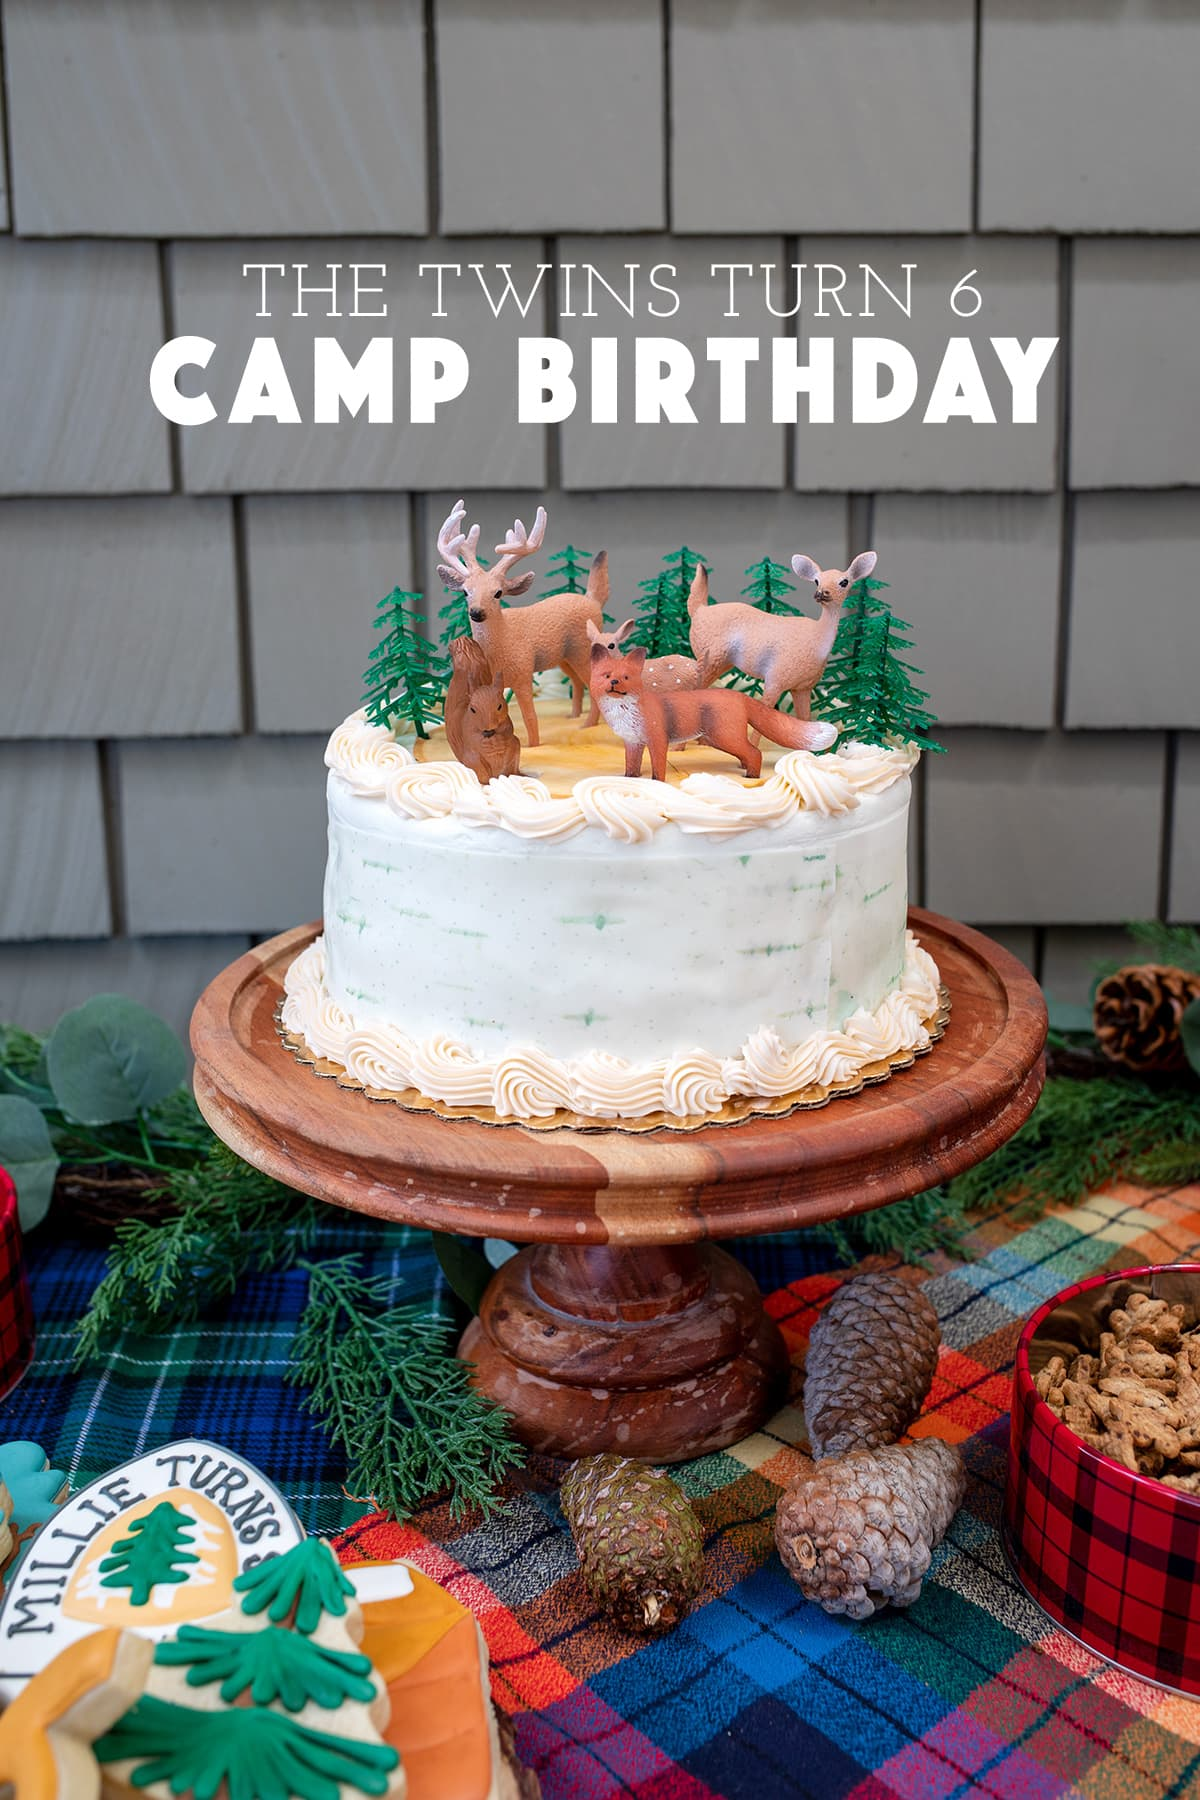 The twins turn 6 Camp Birthday Party